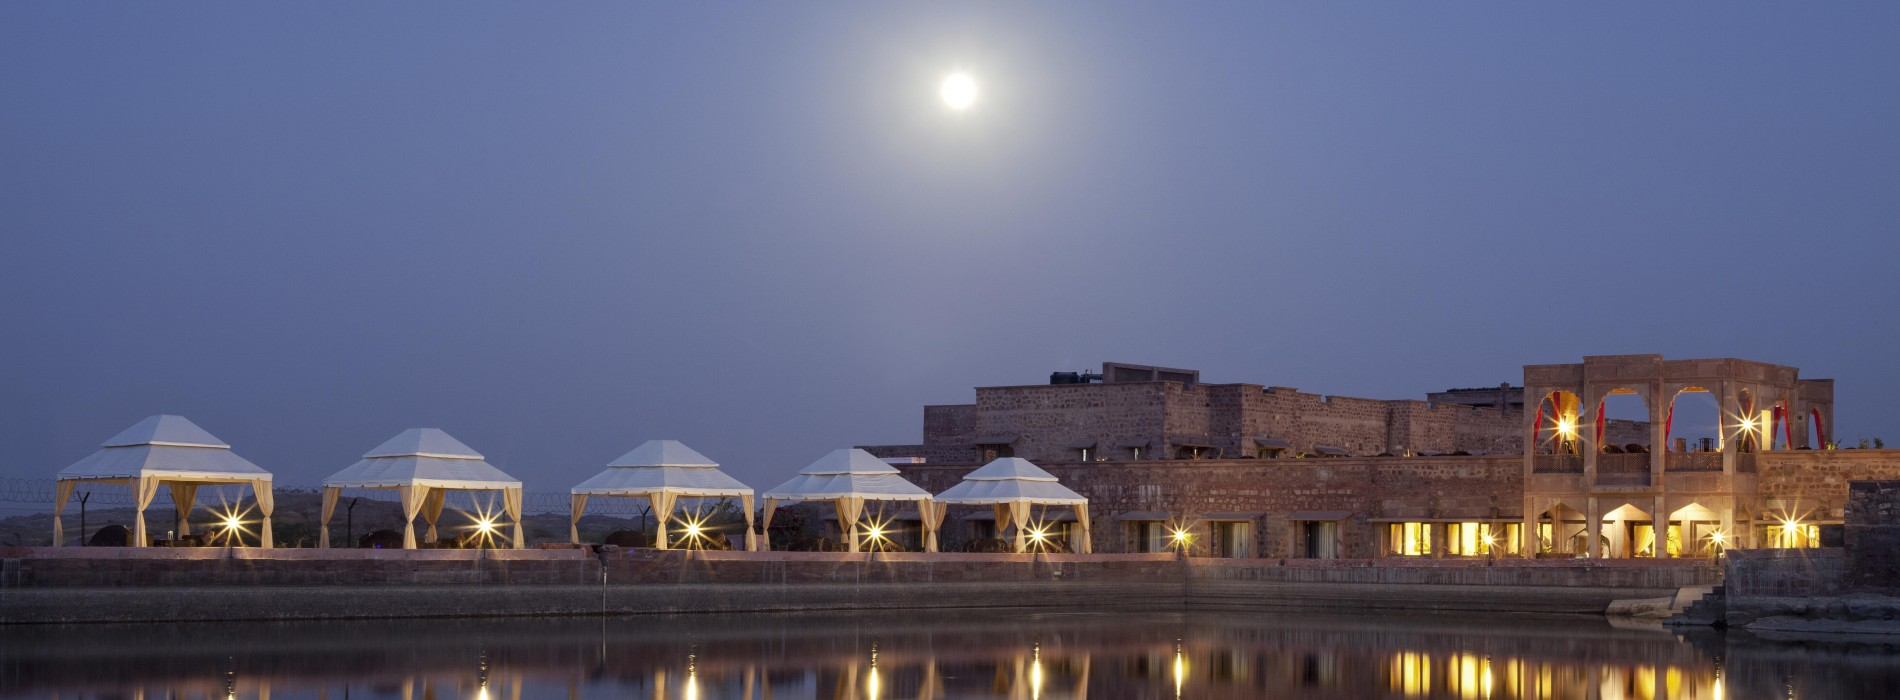 Inde Hotels adds acclaimed heritage property to its portfolio